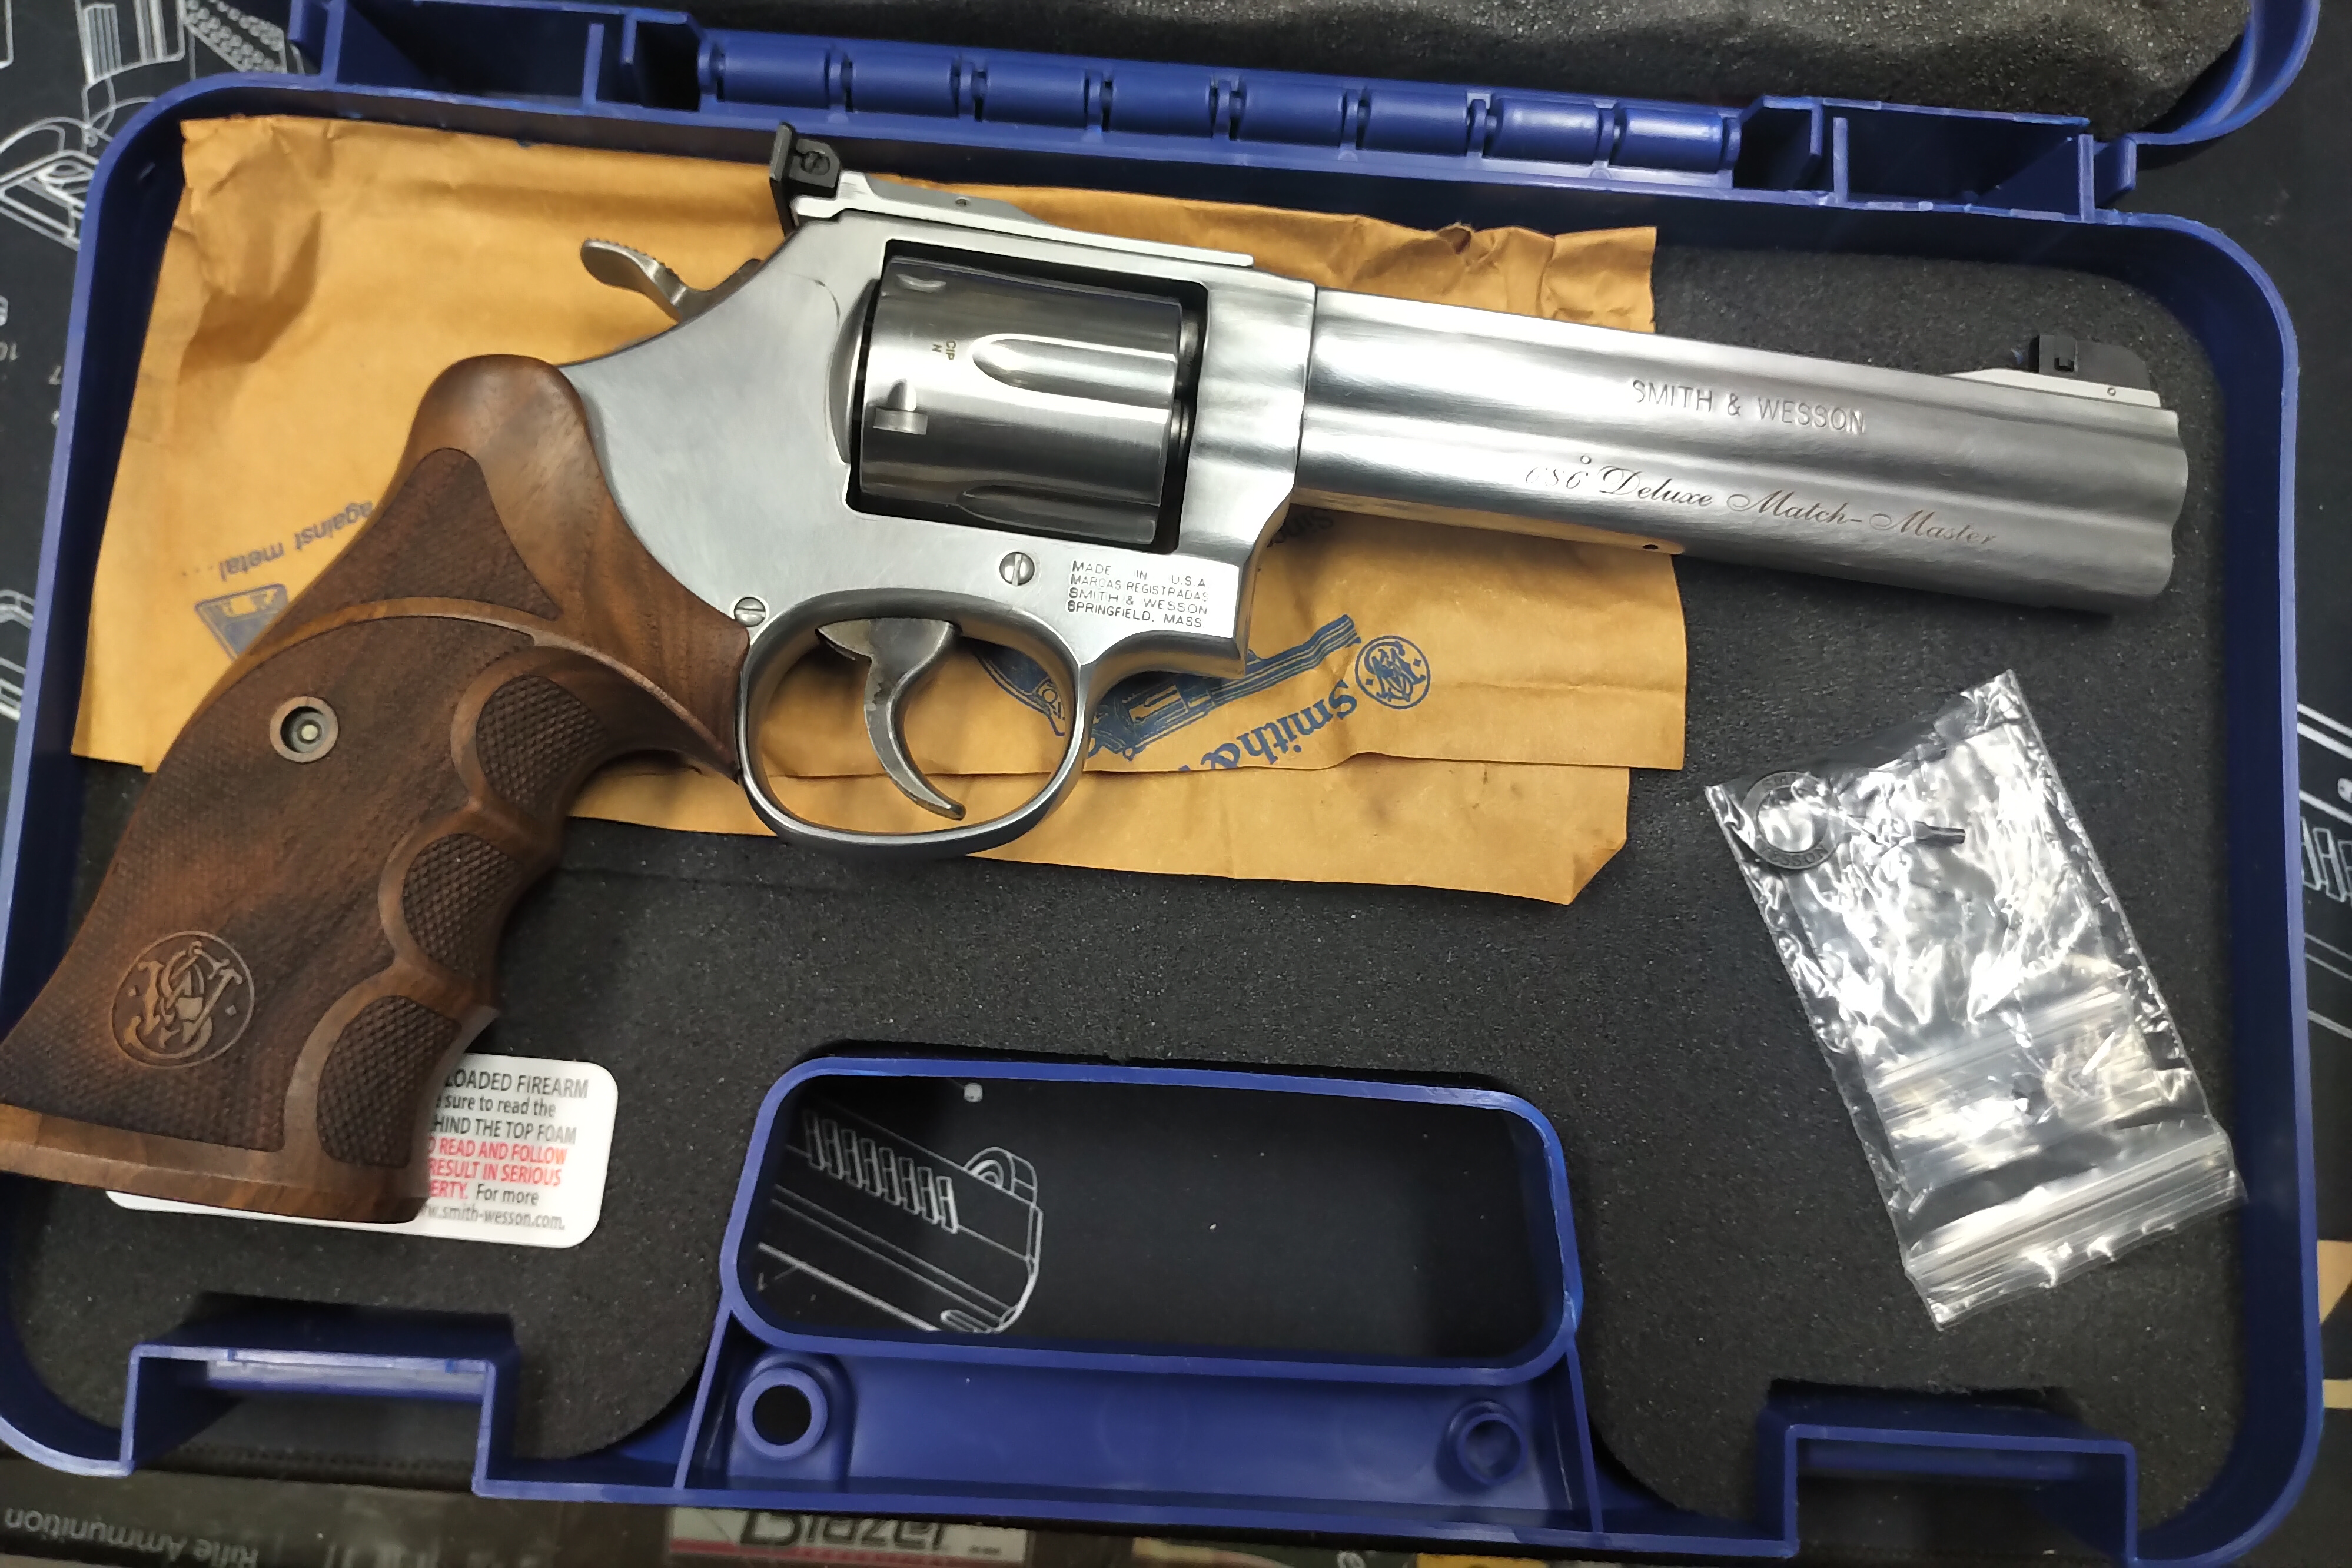 Smith & Wesson 686 Deluxe Match Master